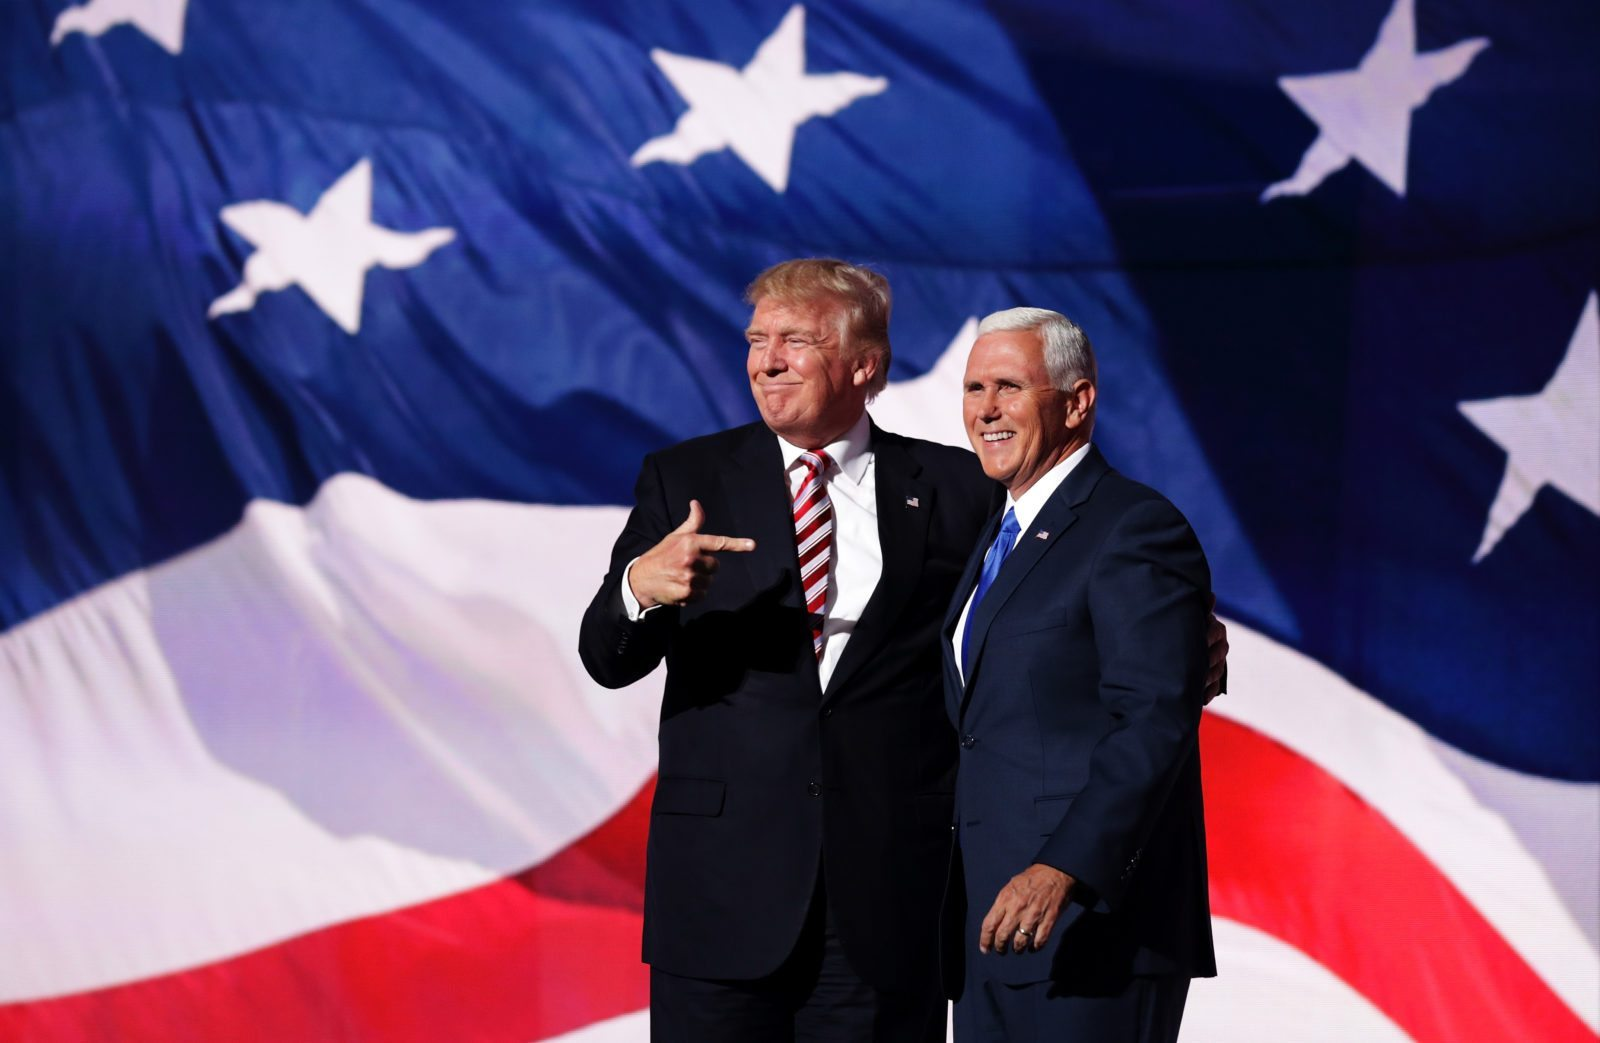 CLEVELAND, OH - JULY 20: Republican presidential candidate Donald Trump stand with Republican vice presidential candidate Mike Pence and acknowledge the crowd on the third day of the Republican National Convention on July 20, 2016 at the Quicken Loans Arena in Cleveland, Ohio. Republican presidential candidate Donald Trump received the number of votes needed to secure the party's nomination. An estimated 50,000 people are expected in Cleveland, including hundreds of protesters and members of the media. The four-day Republican National Convention kicked off on July 18. (Photo by Chip Somodevilla/Getty Images)